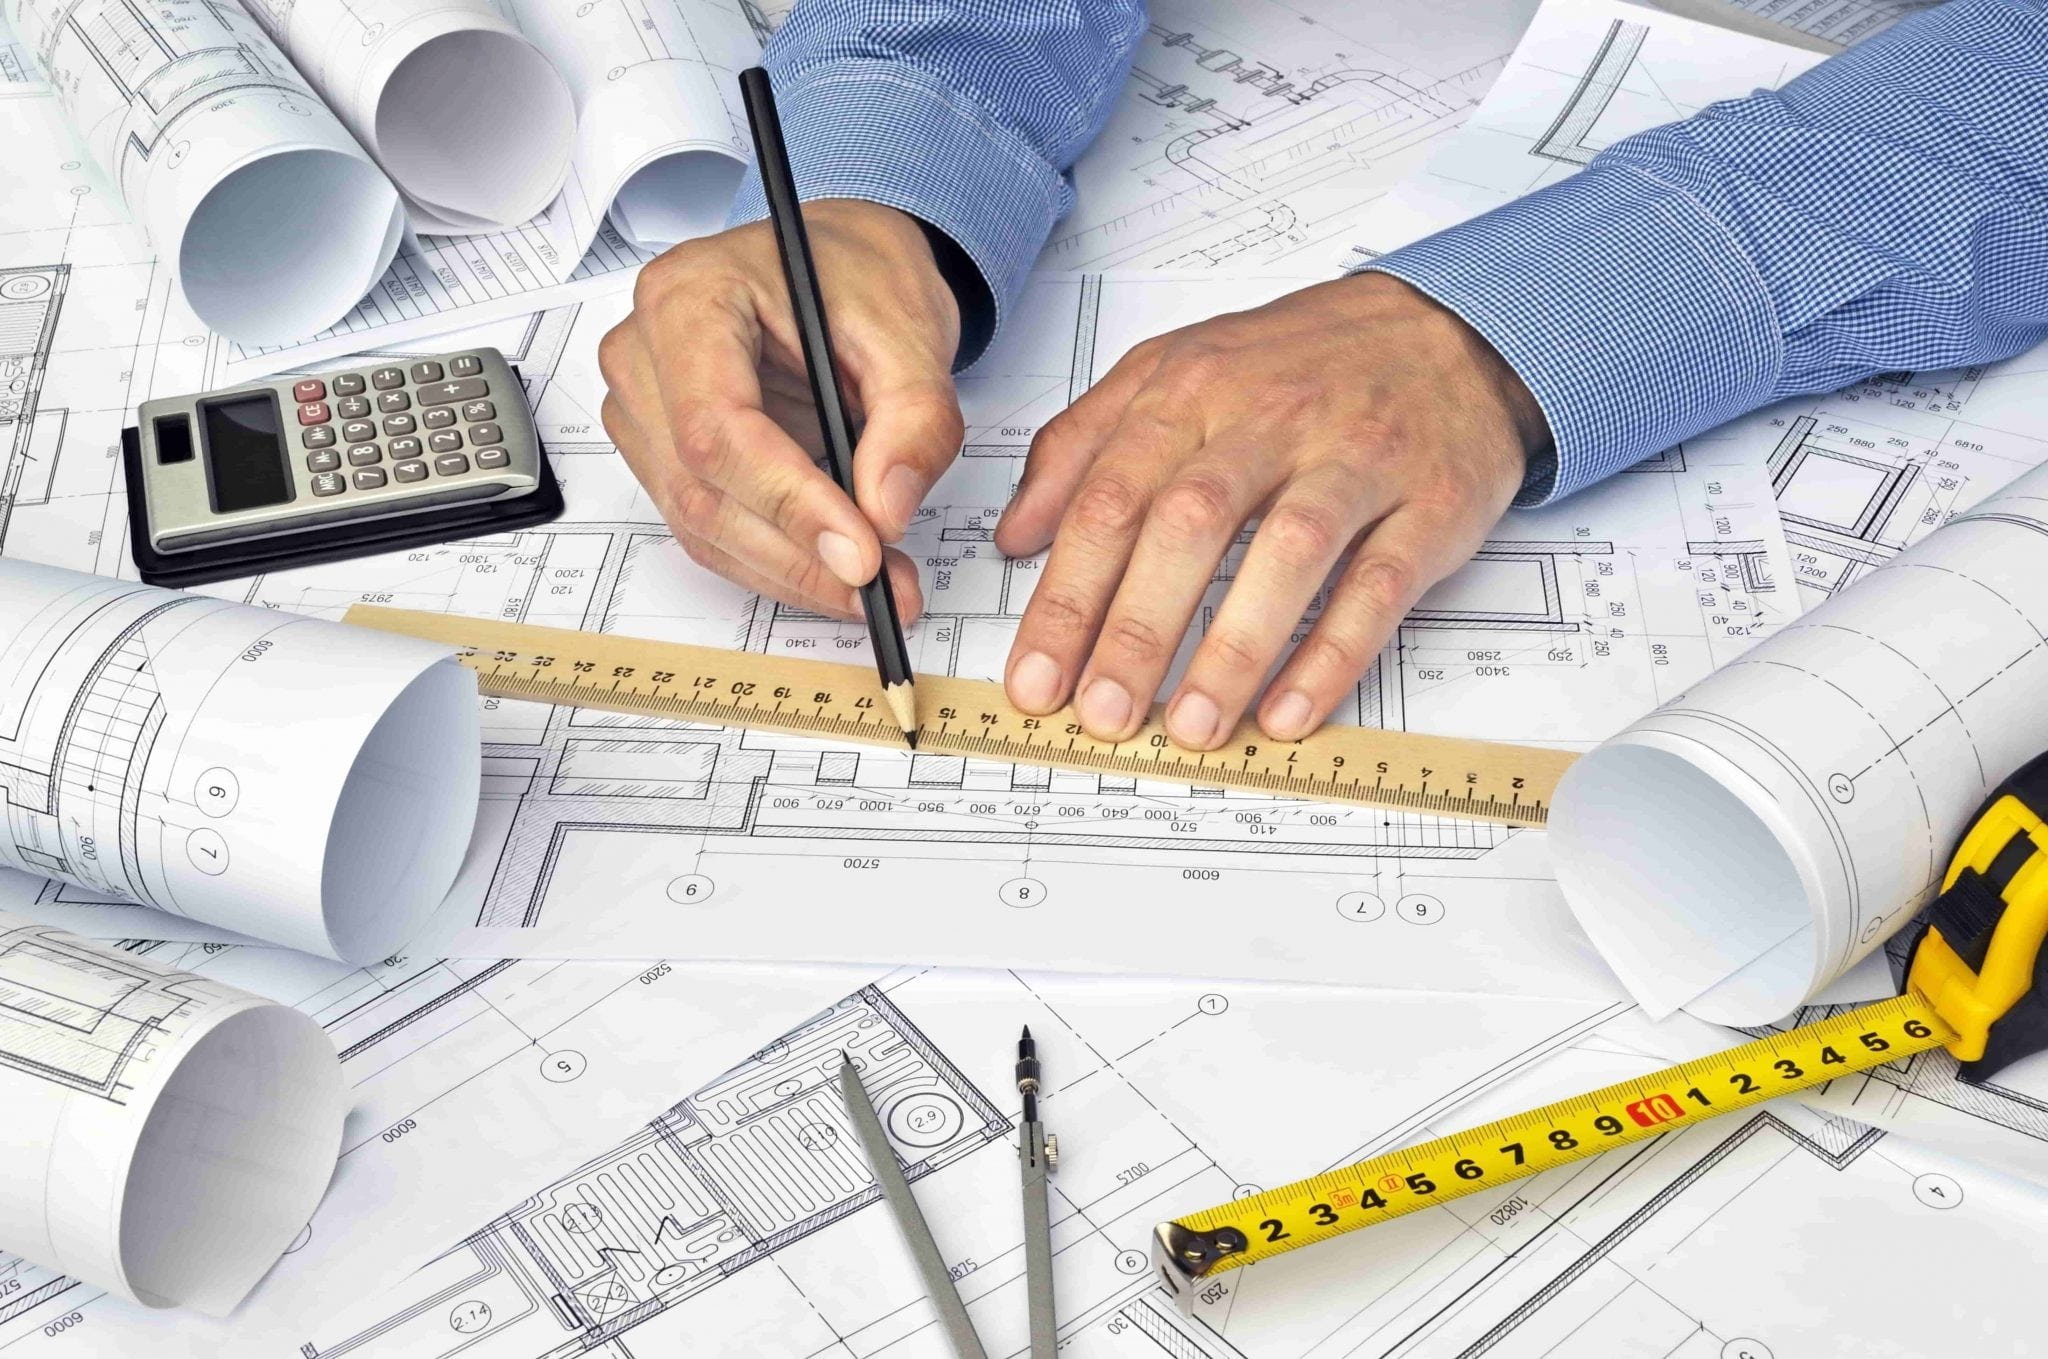 contractor planning building construction